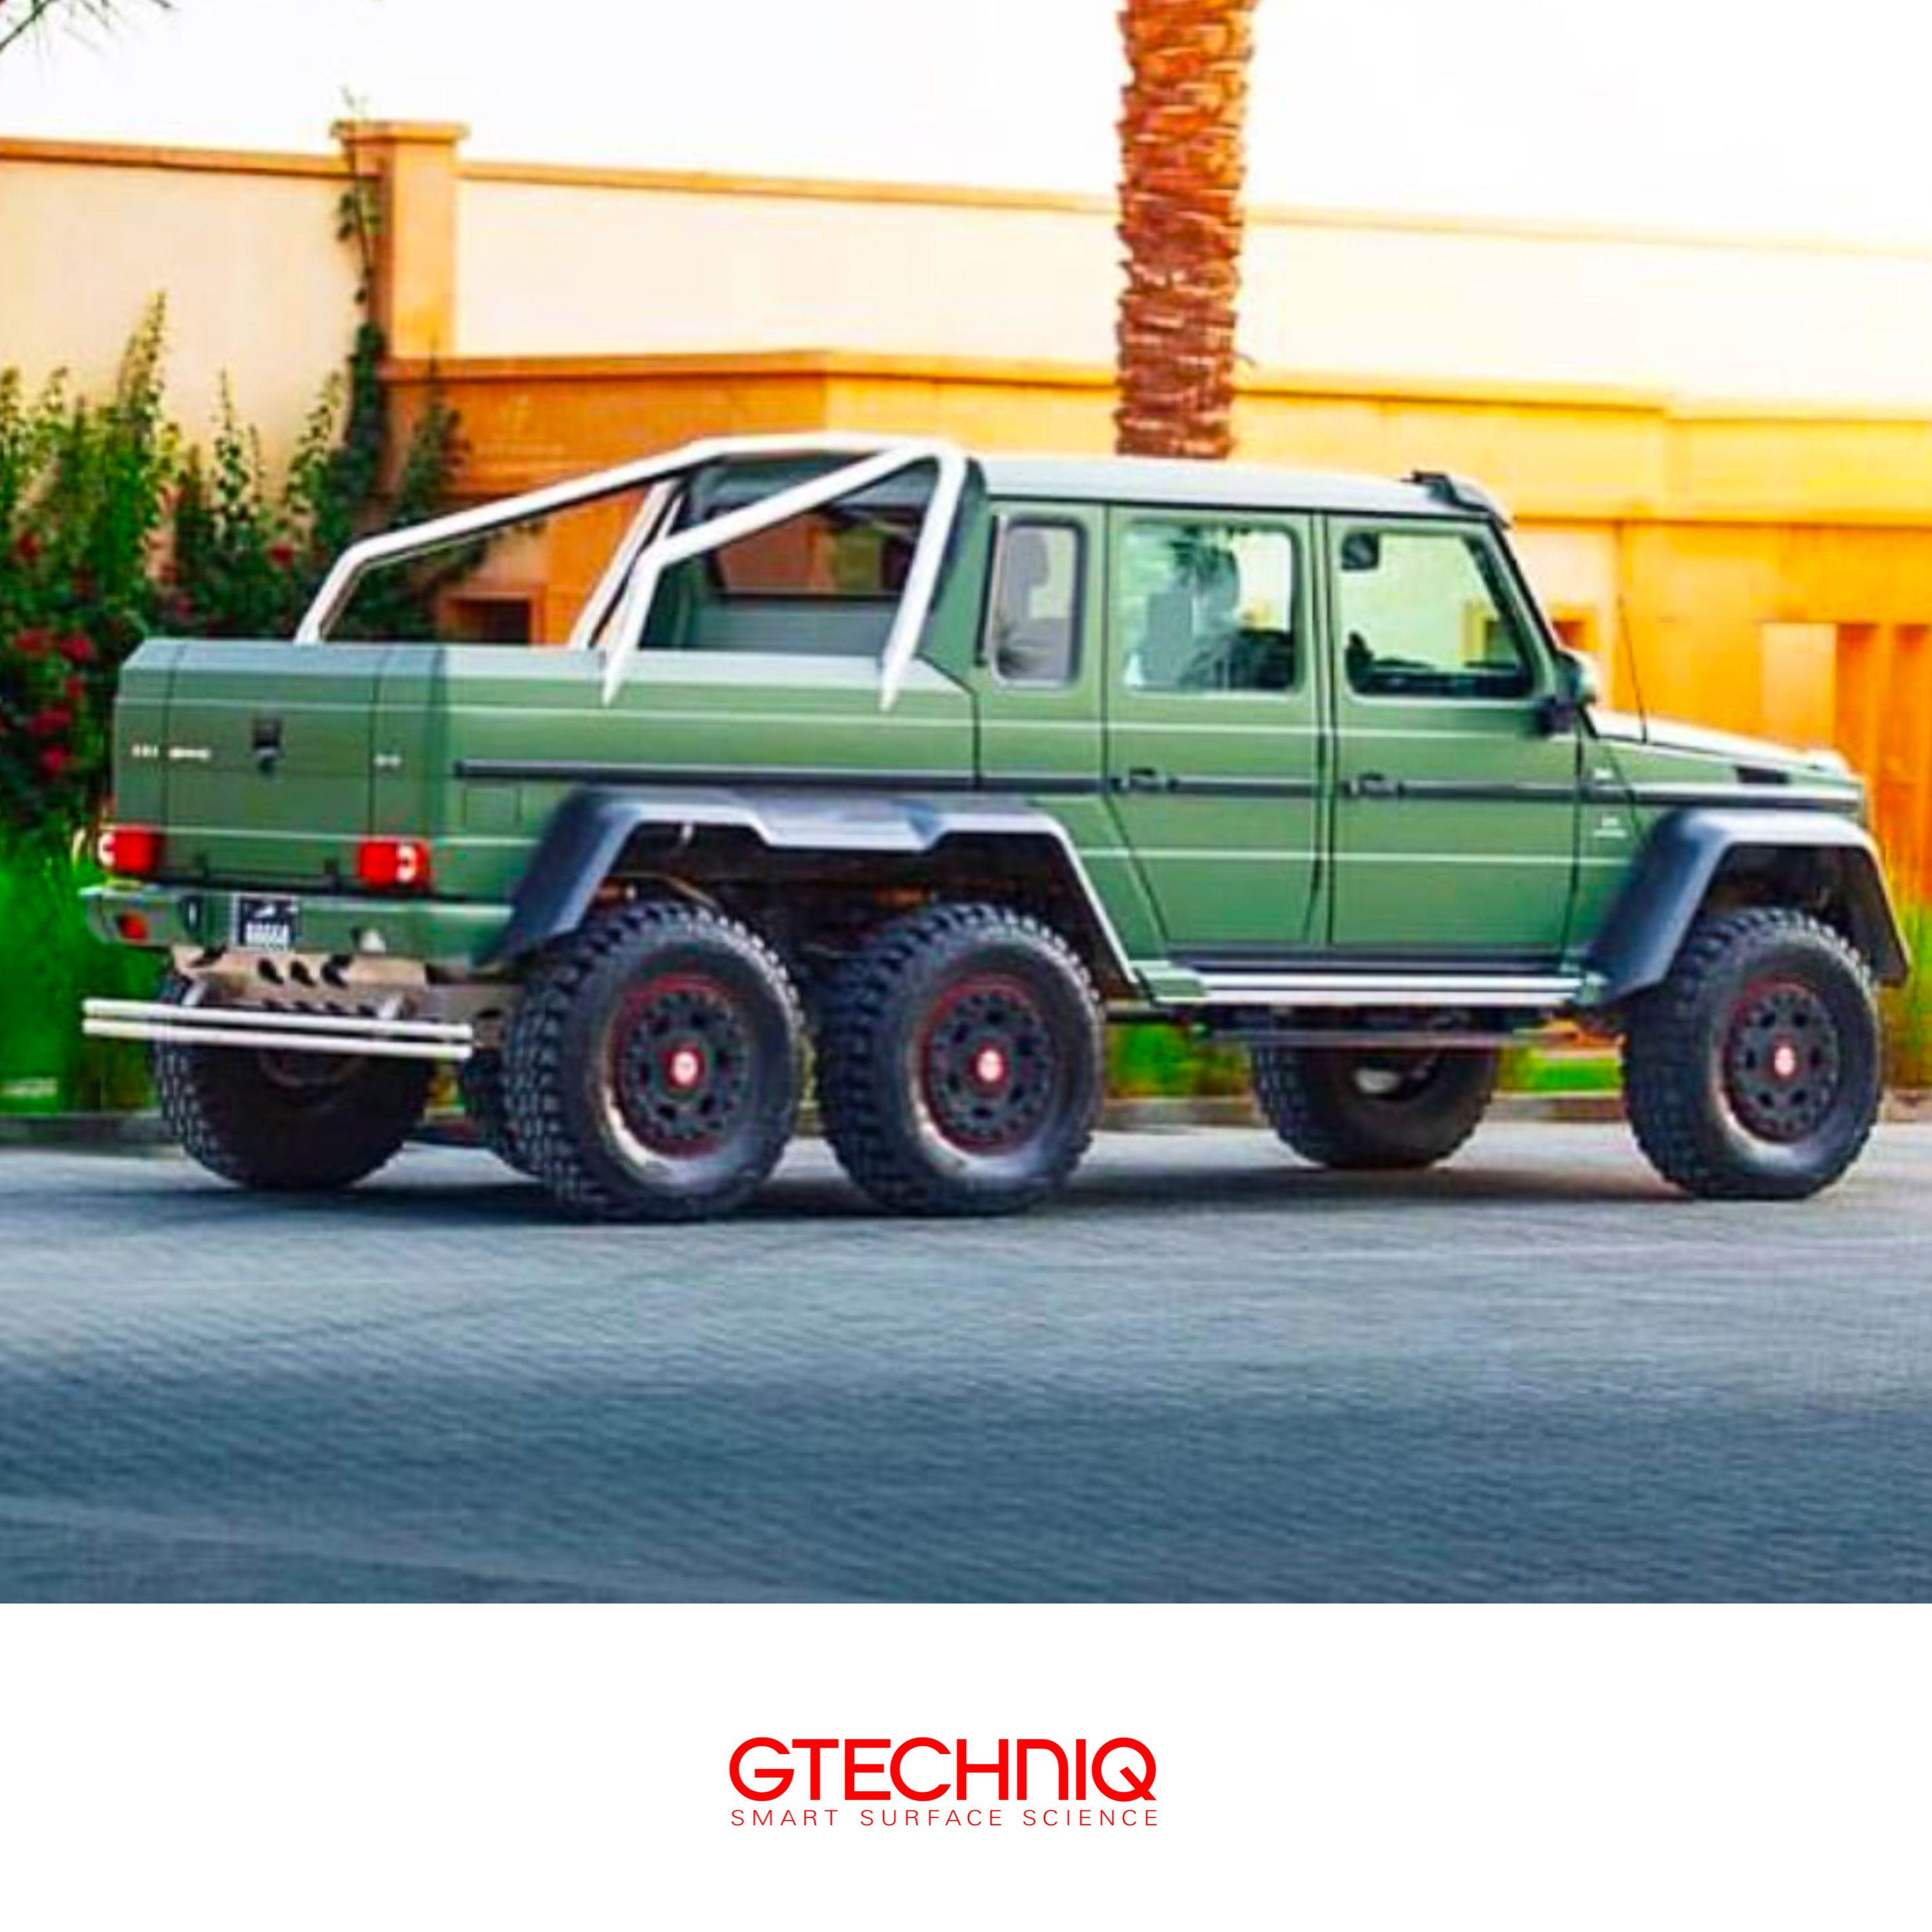 Mercedes Benz G63 Amg 6x6 Wrapped In Military Green Protected By